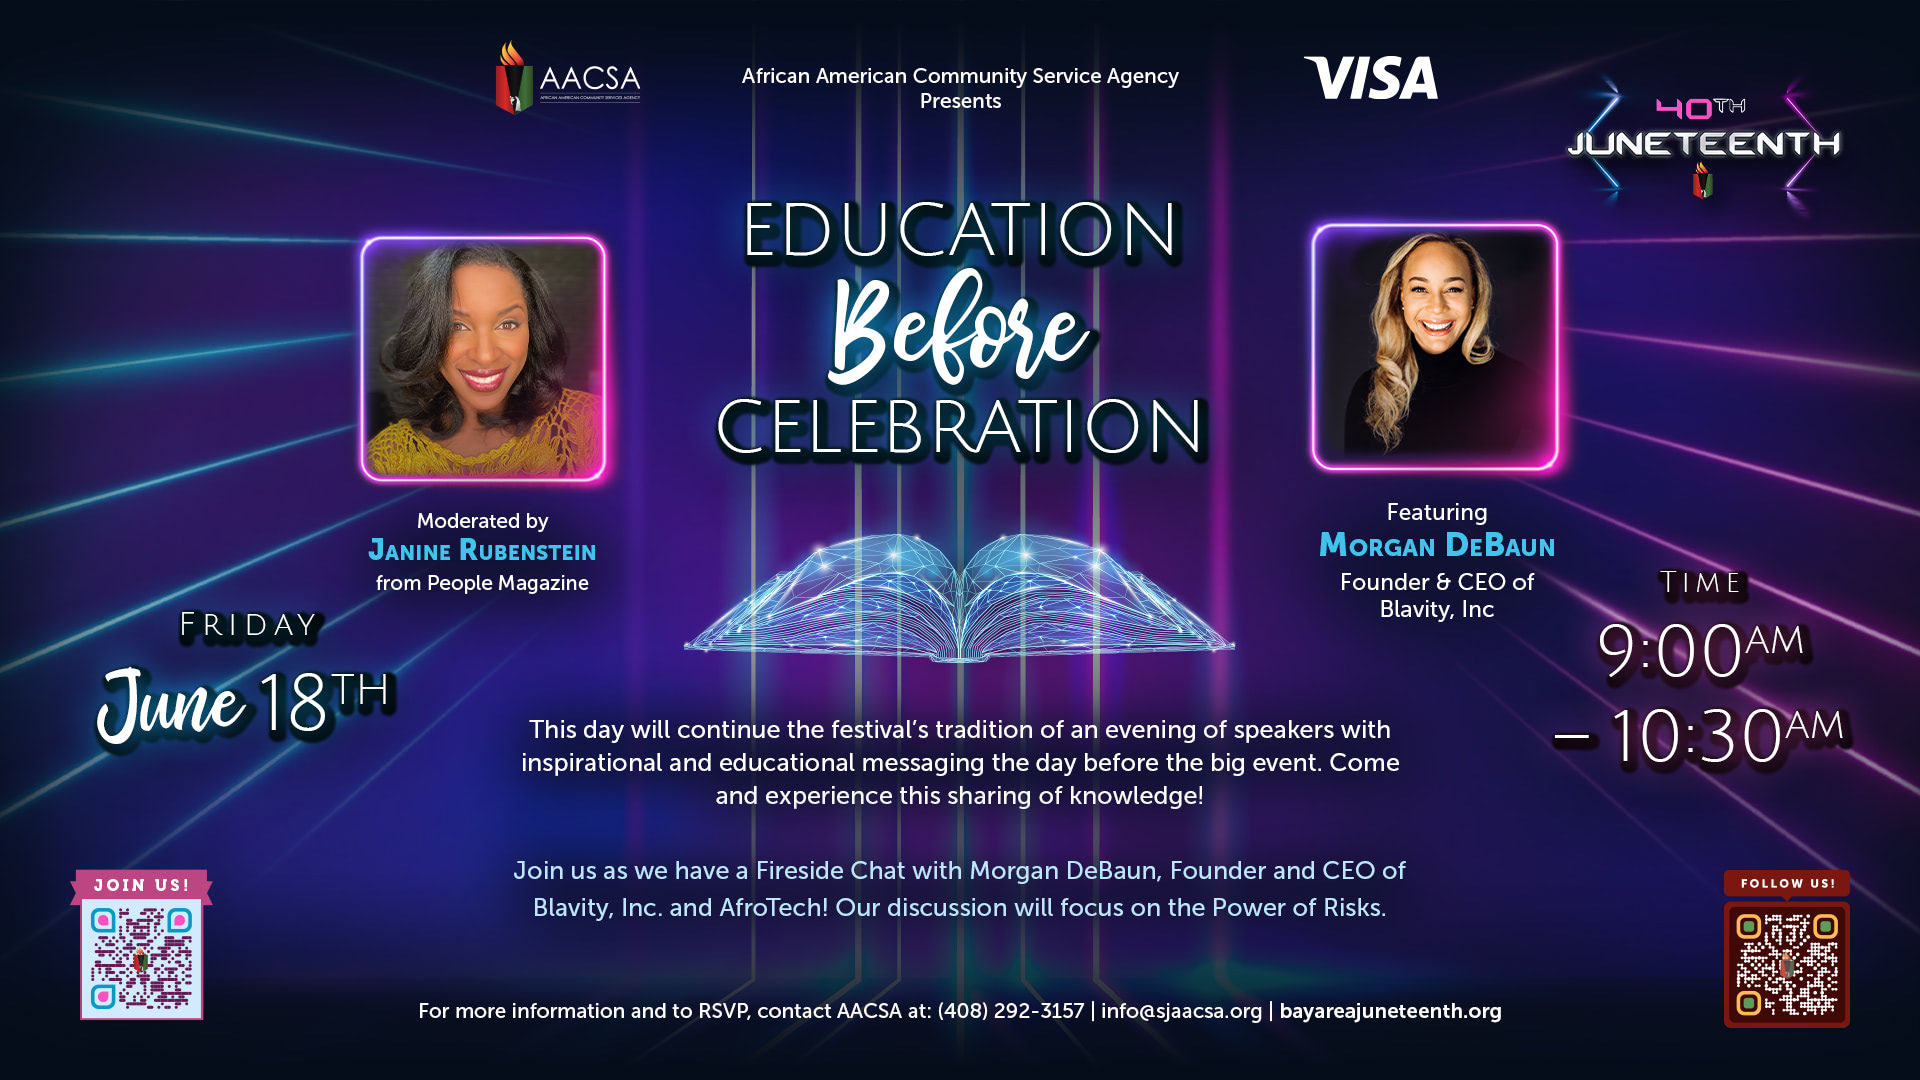 Banner for the 40th Annual Juneteenth In The Park Celebration Week event: Education Before Celebration at 9:00am until 10:00am PST. Moderated by People Magazine's Janine Rubenstein & featuring Morgan DeBaun, founder & CEO of Blavity, Inc. Click the banner to see event details & sign-up!